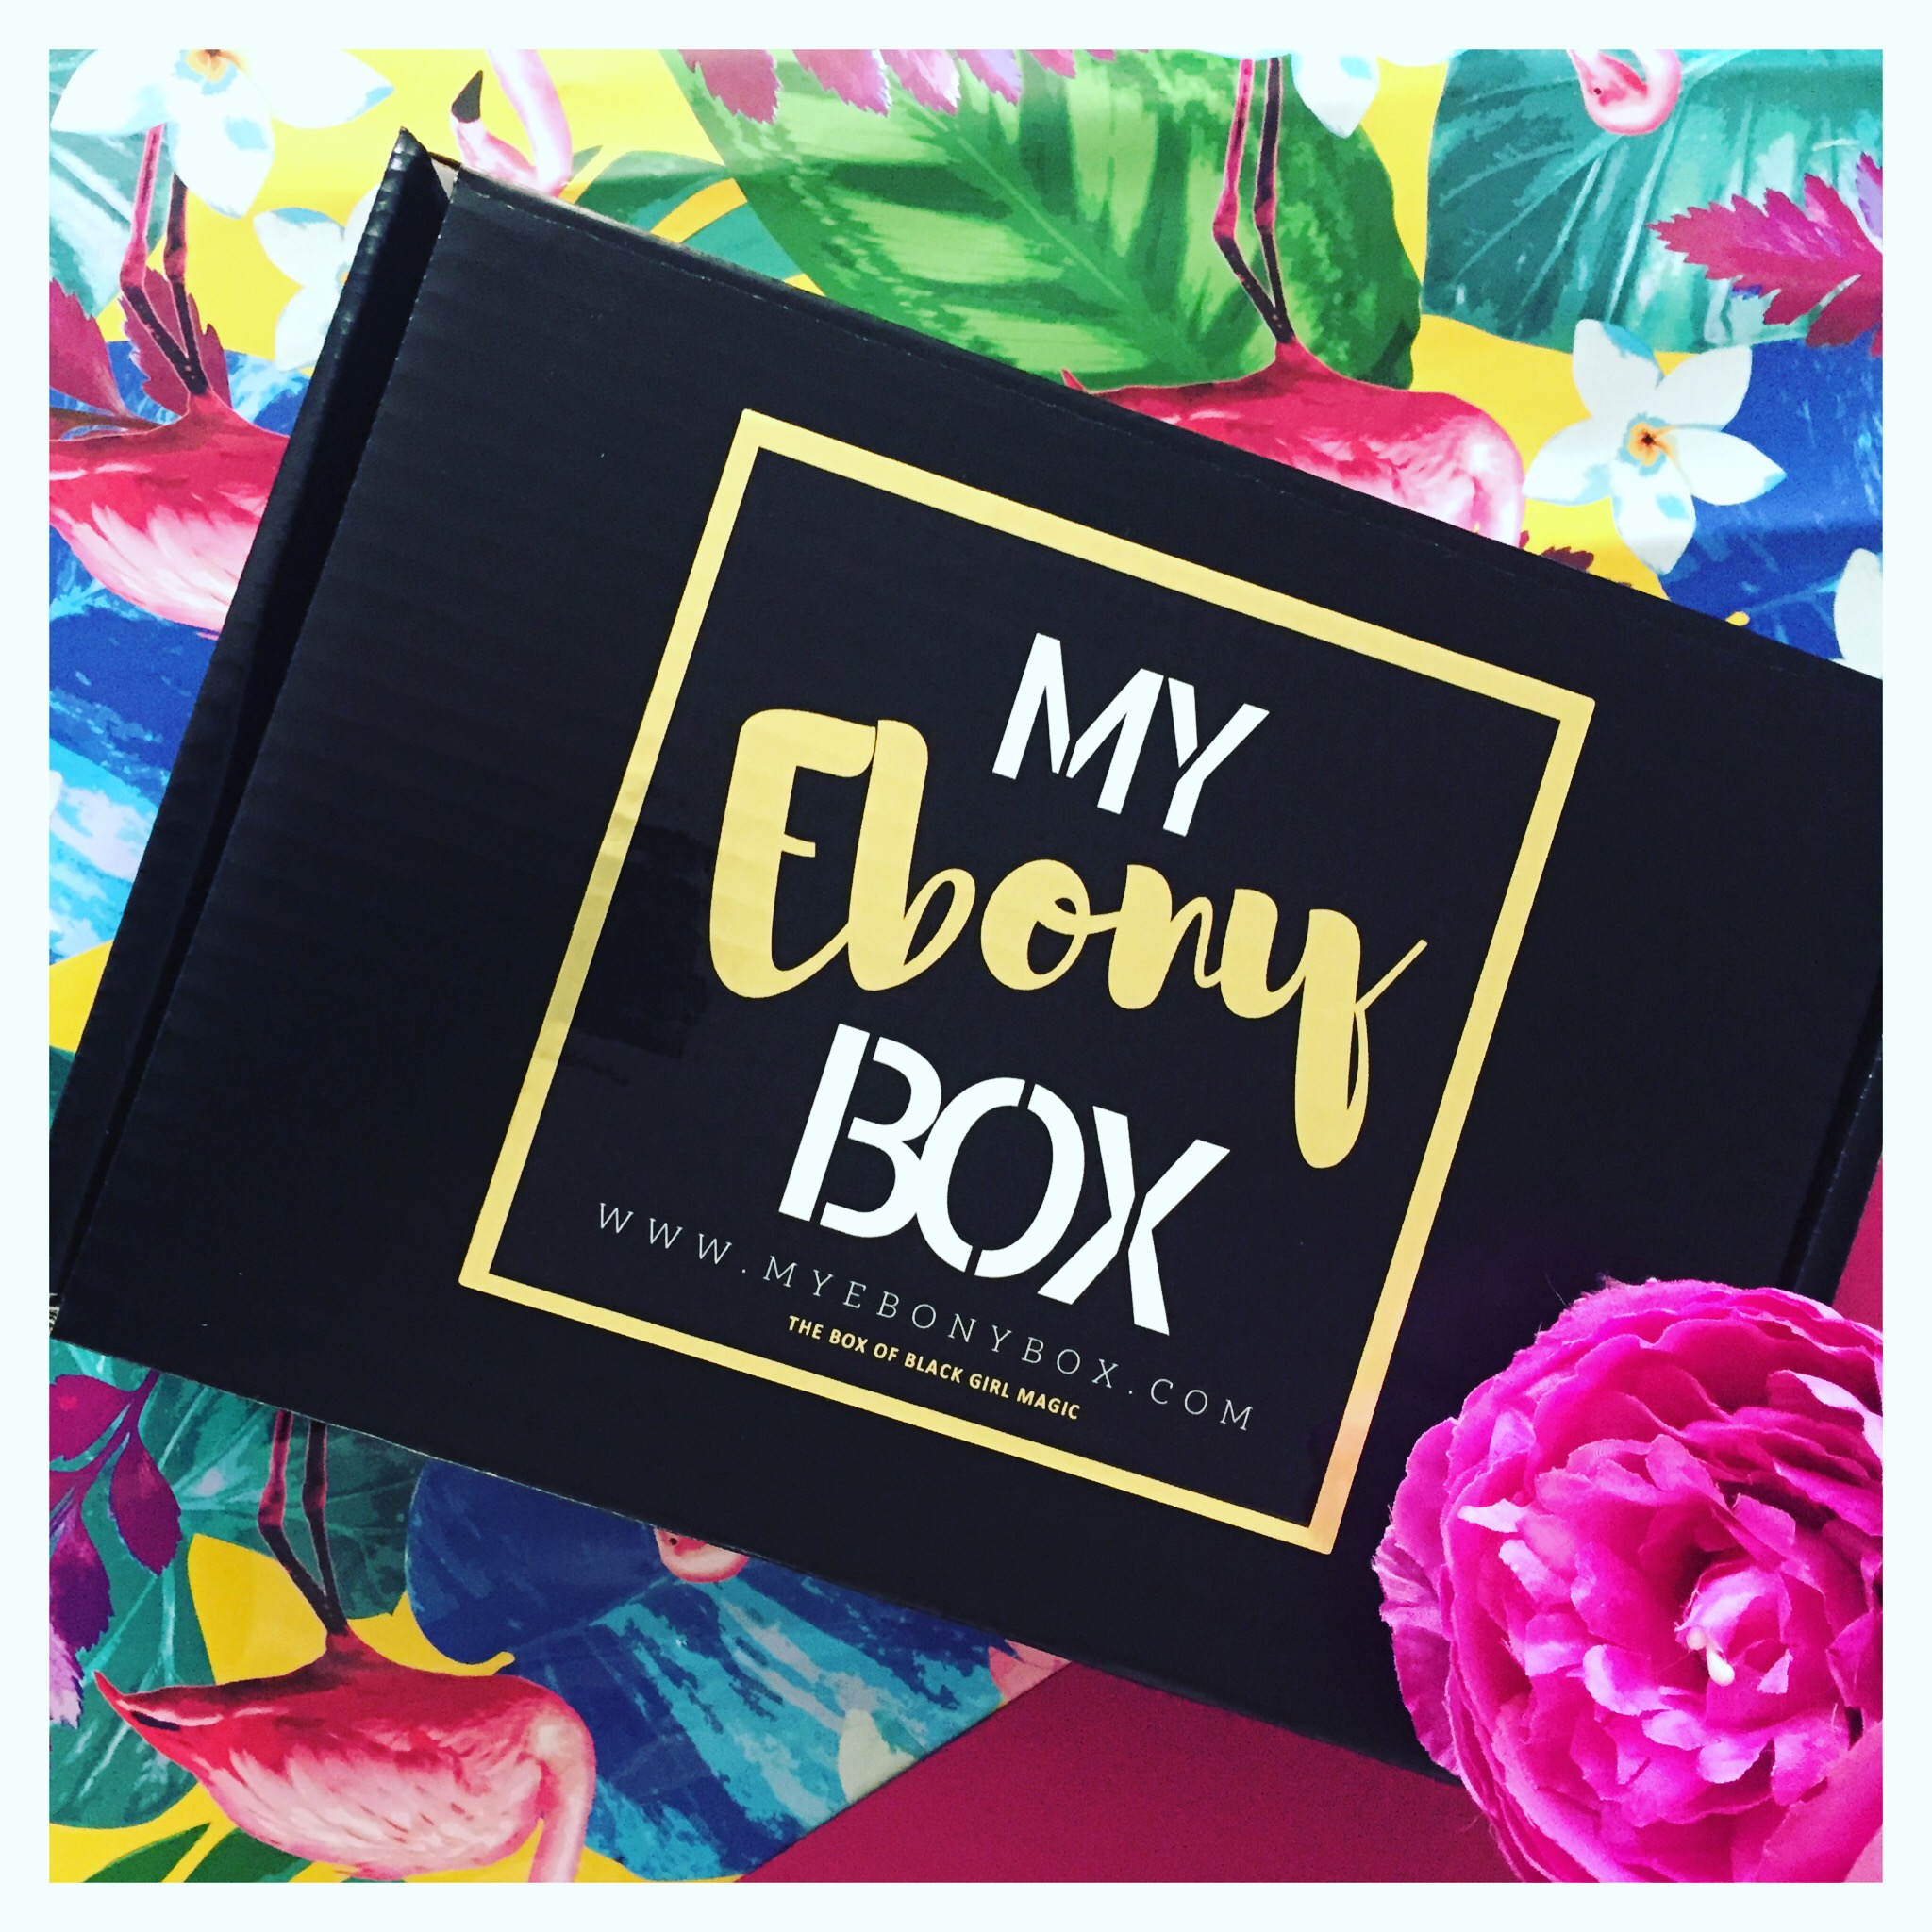 My Ebony Box 0427 subscription box packaging with label